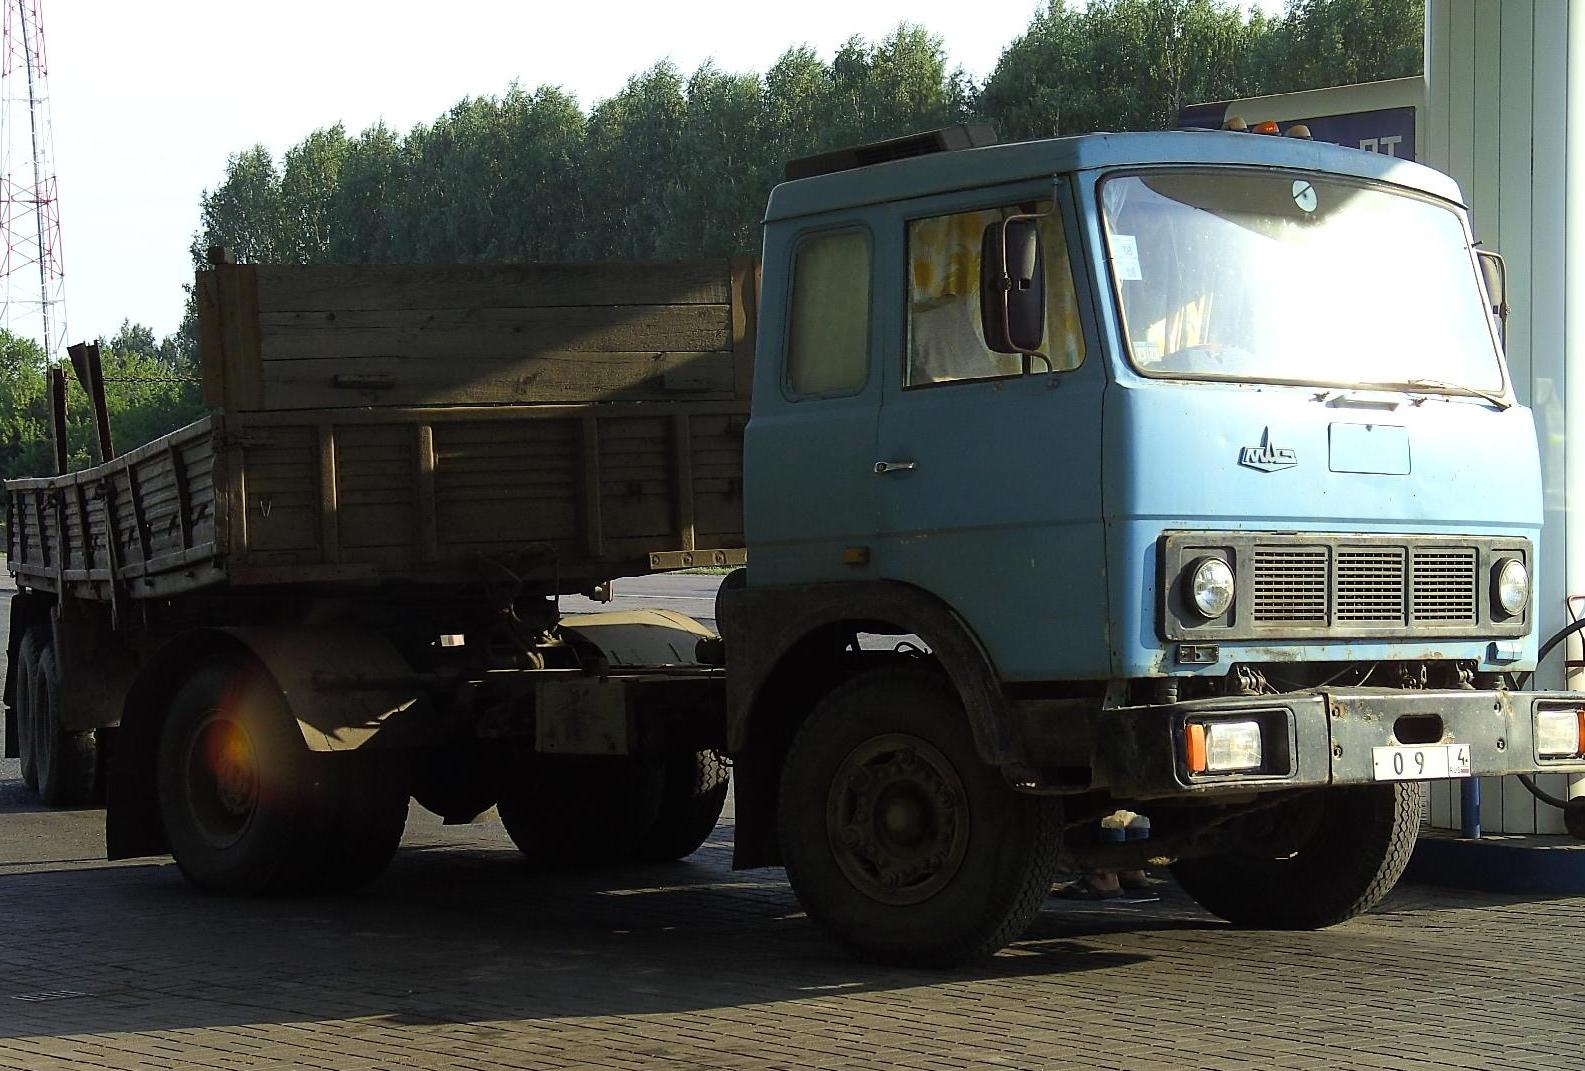 File:MAZ truck in russia.JPG - Wikimedia Commons